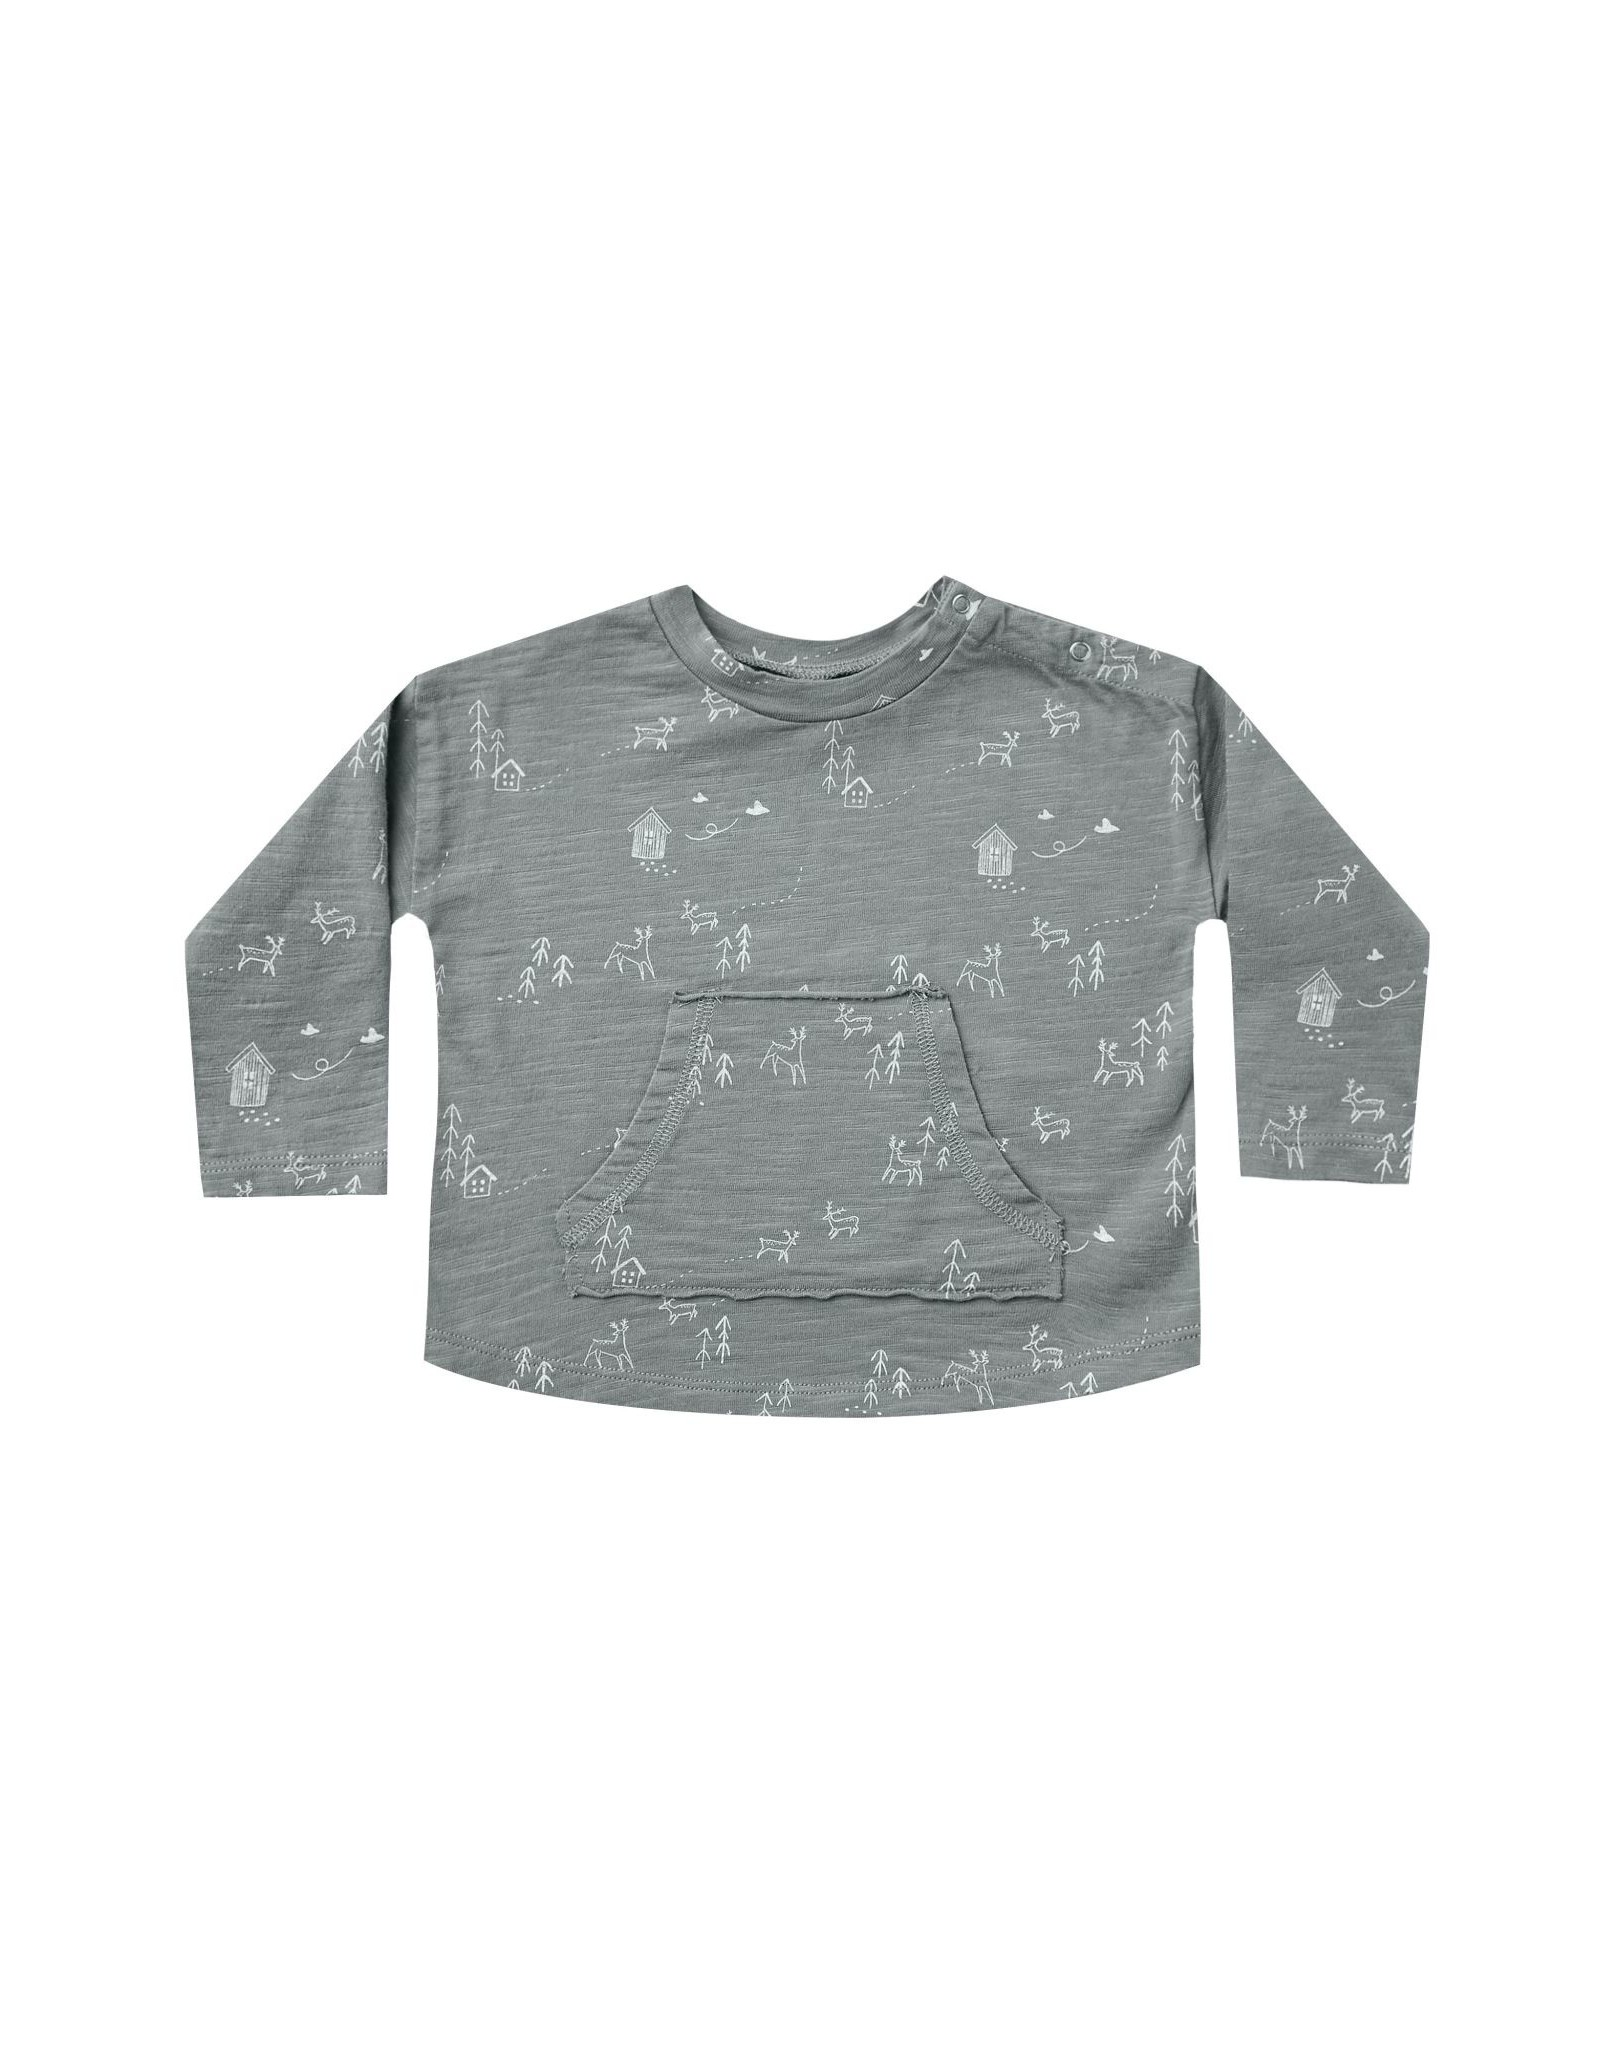 Rylee and Cru ls pouch tee- woods